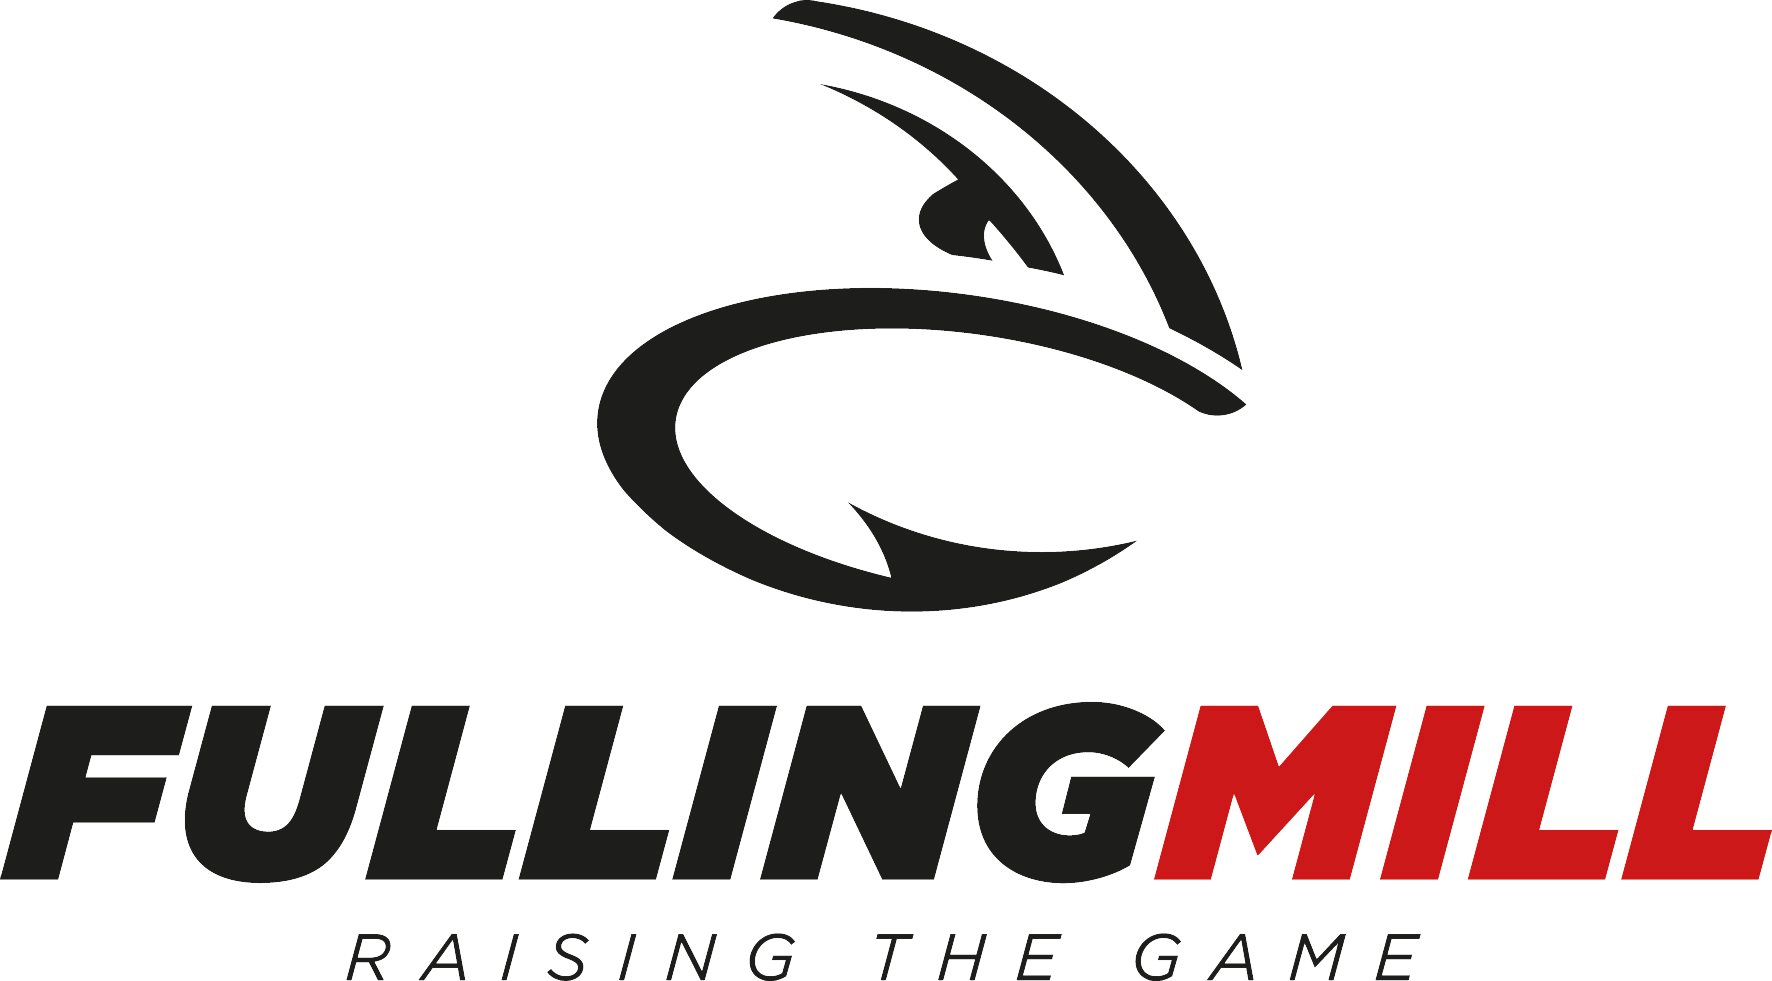 Fulling-Mill-logo-(large-icon)-CMYK-PNG.png